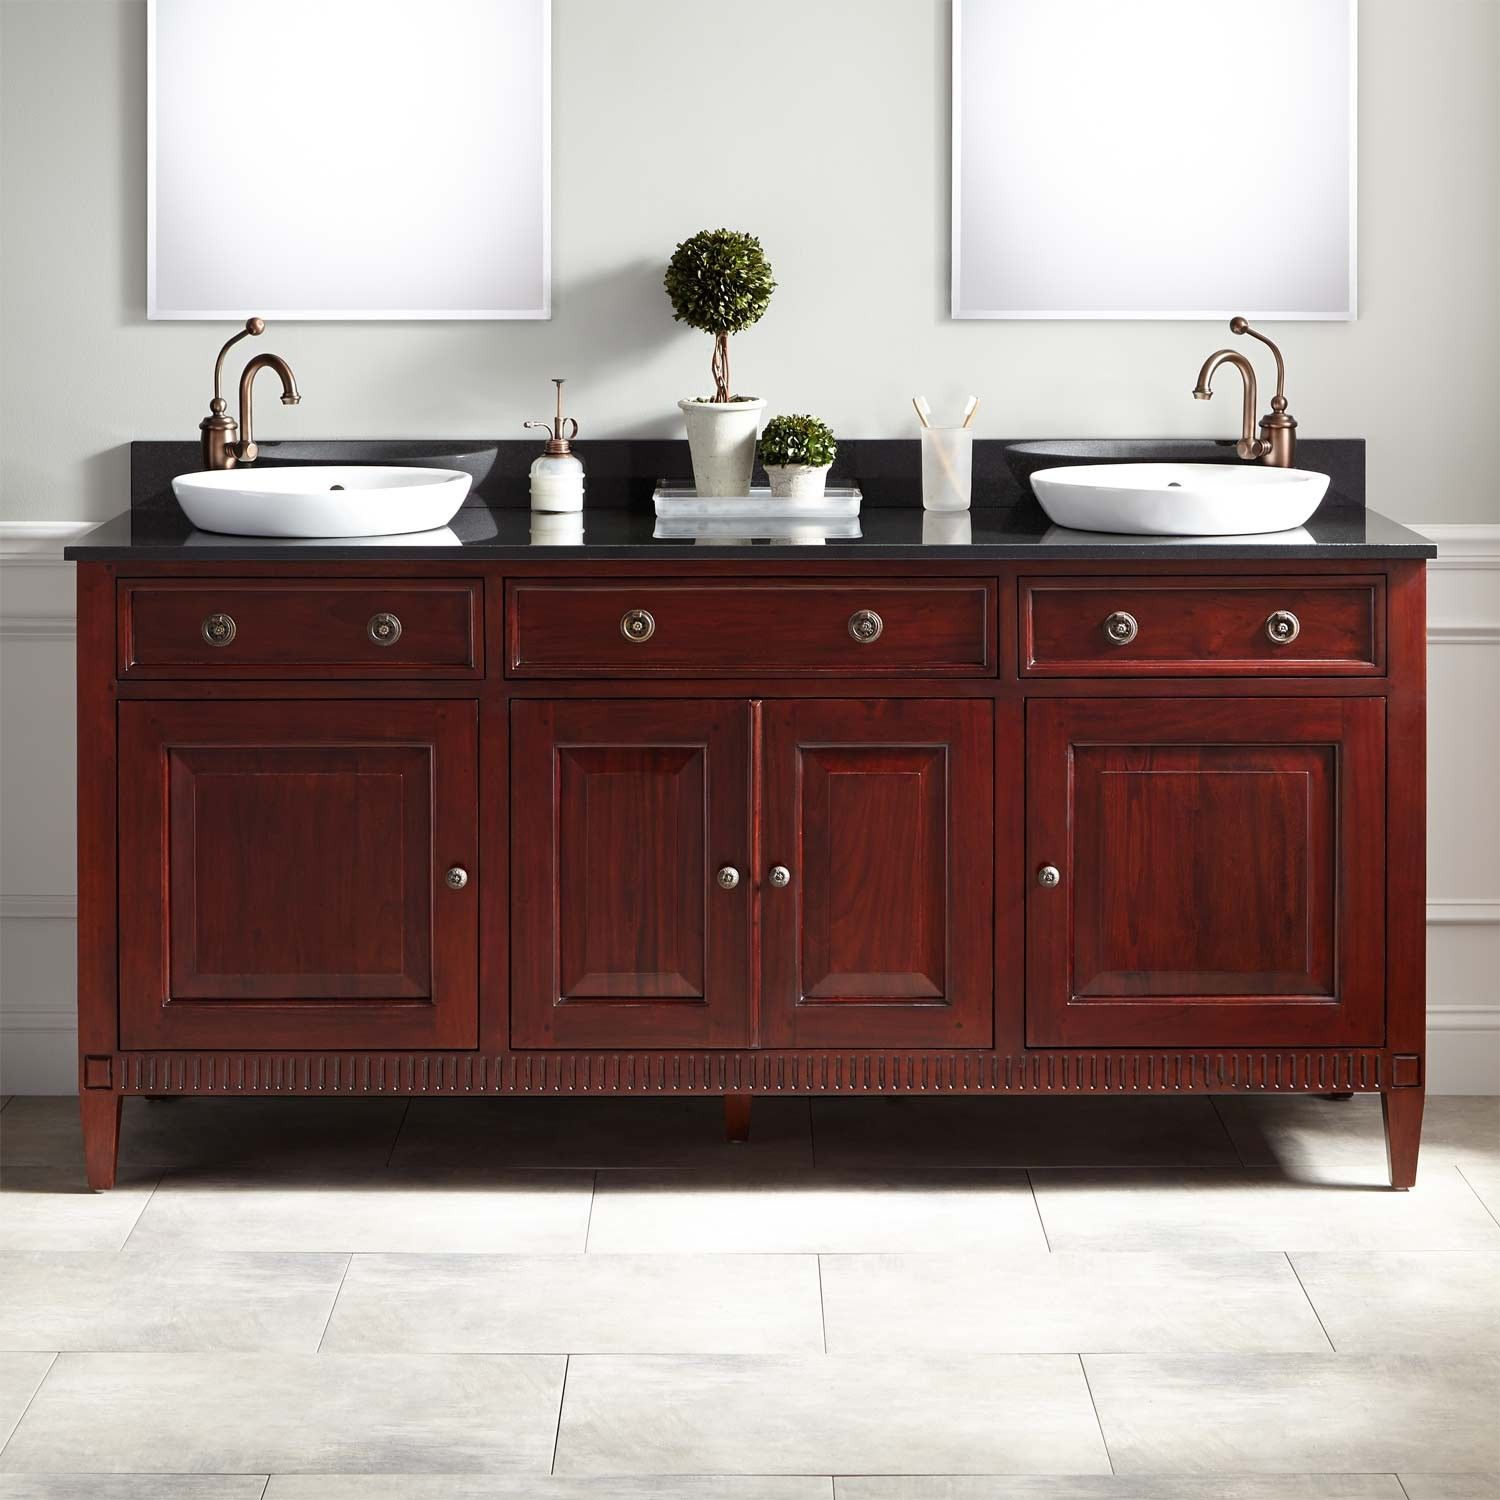 gallery bathroom top nov for wide cabinets ashburn decoration vanity vanities modern com inches the best deals inch overstock shop foremost